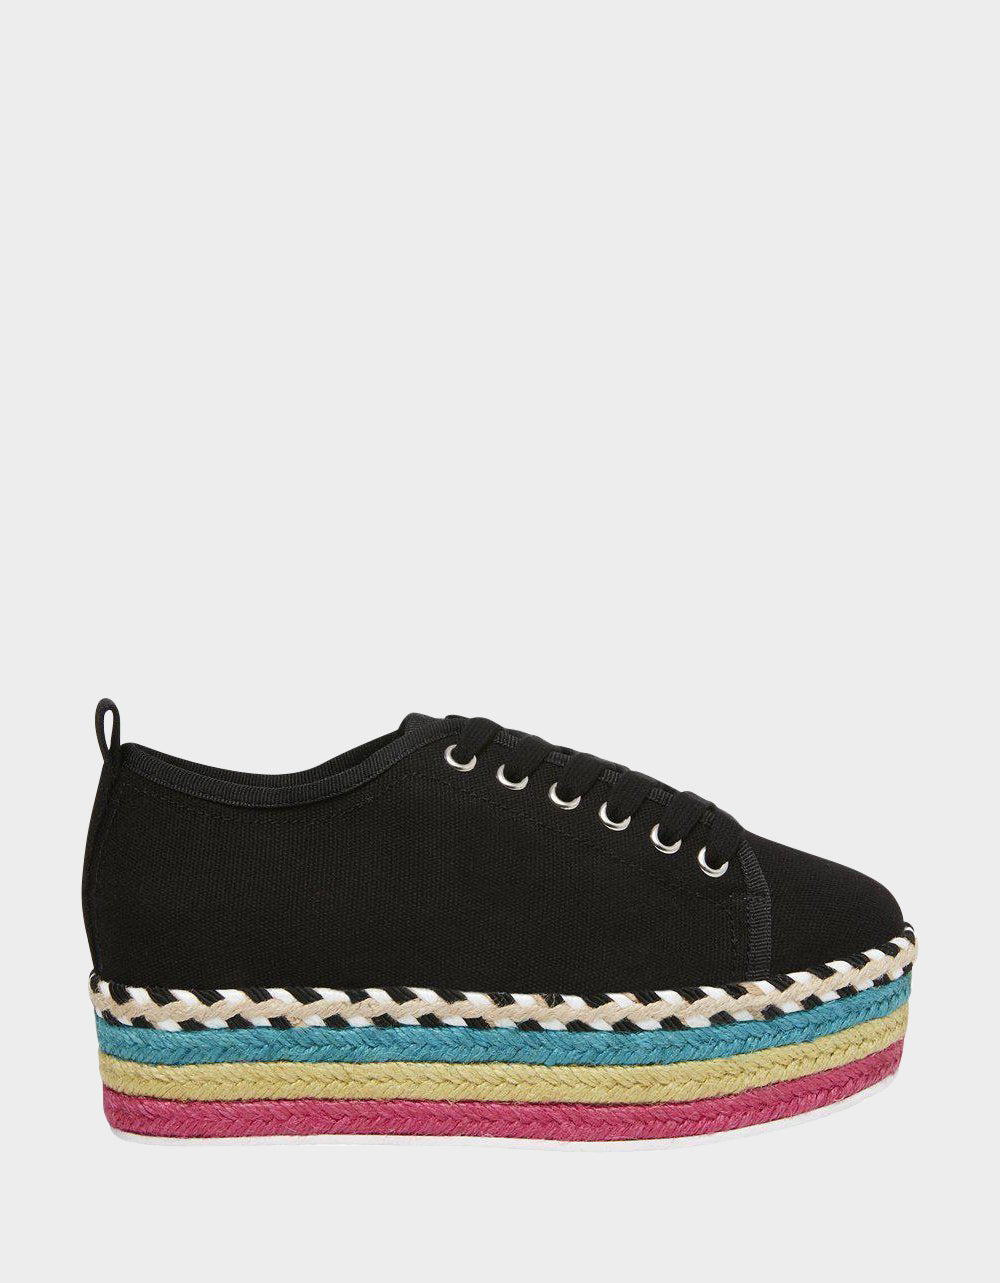 ARBOR BLACK MULTI - SHOES - Betsey Johnson